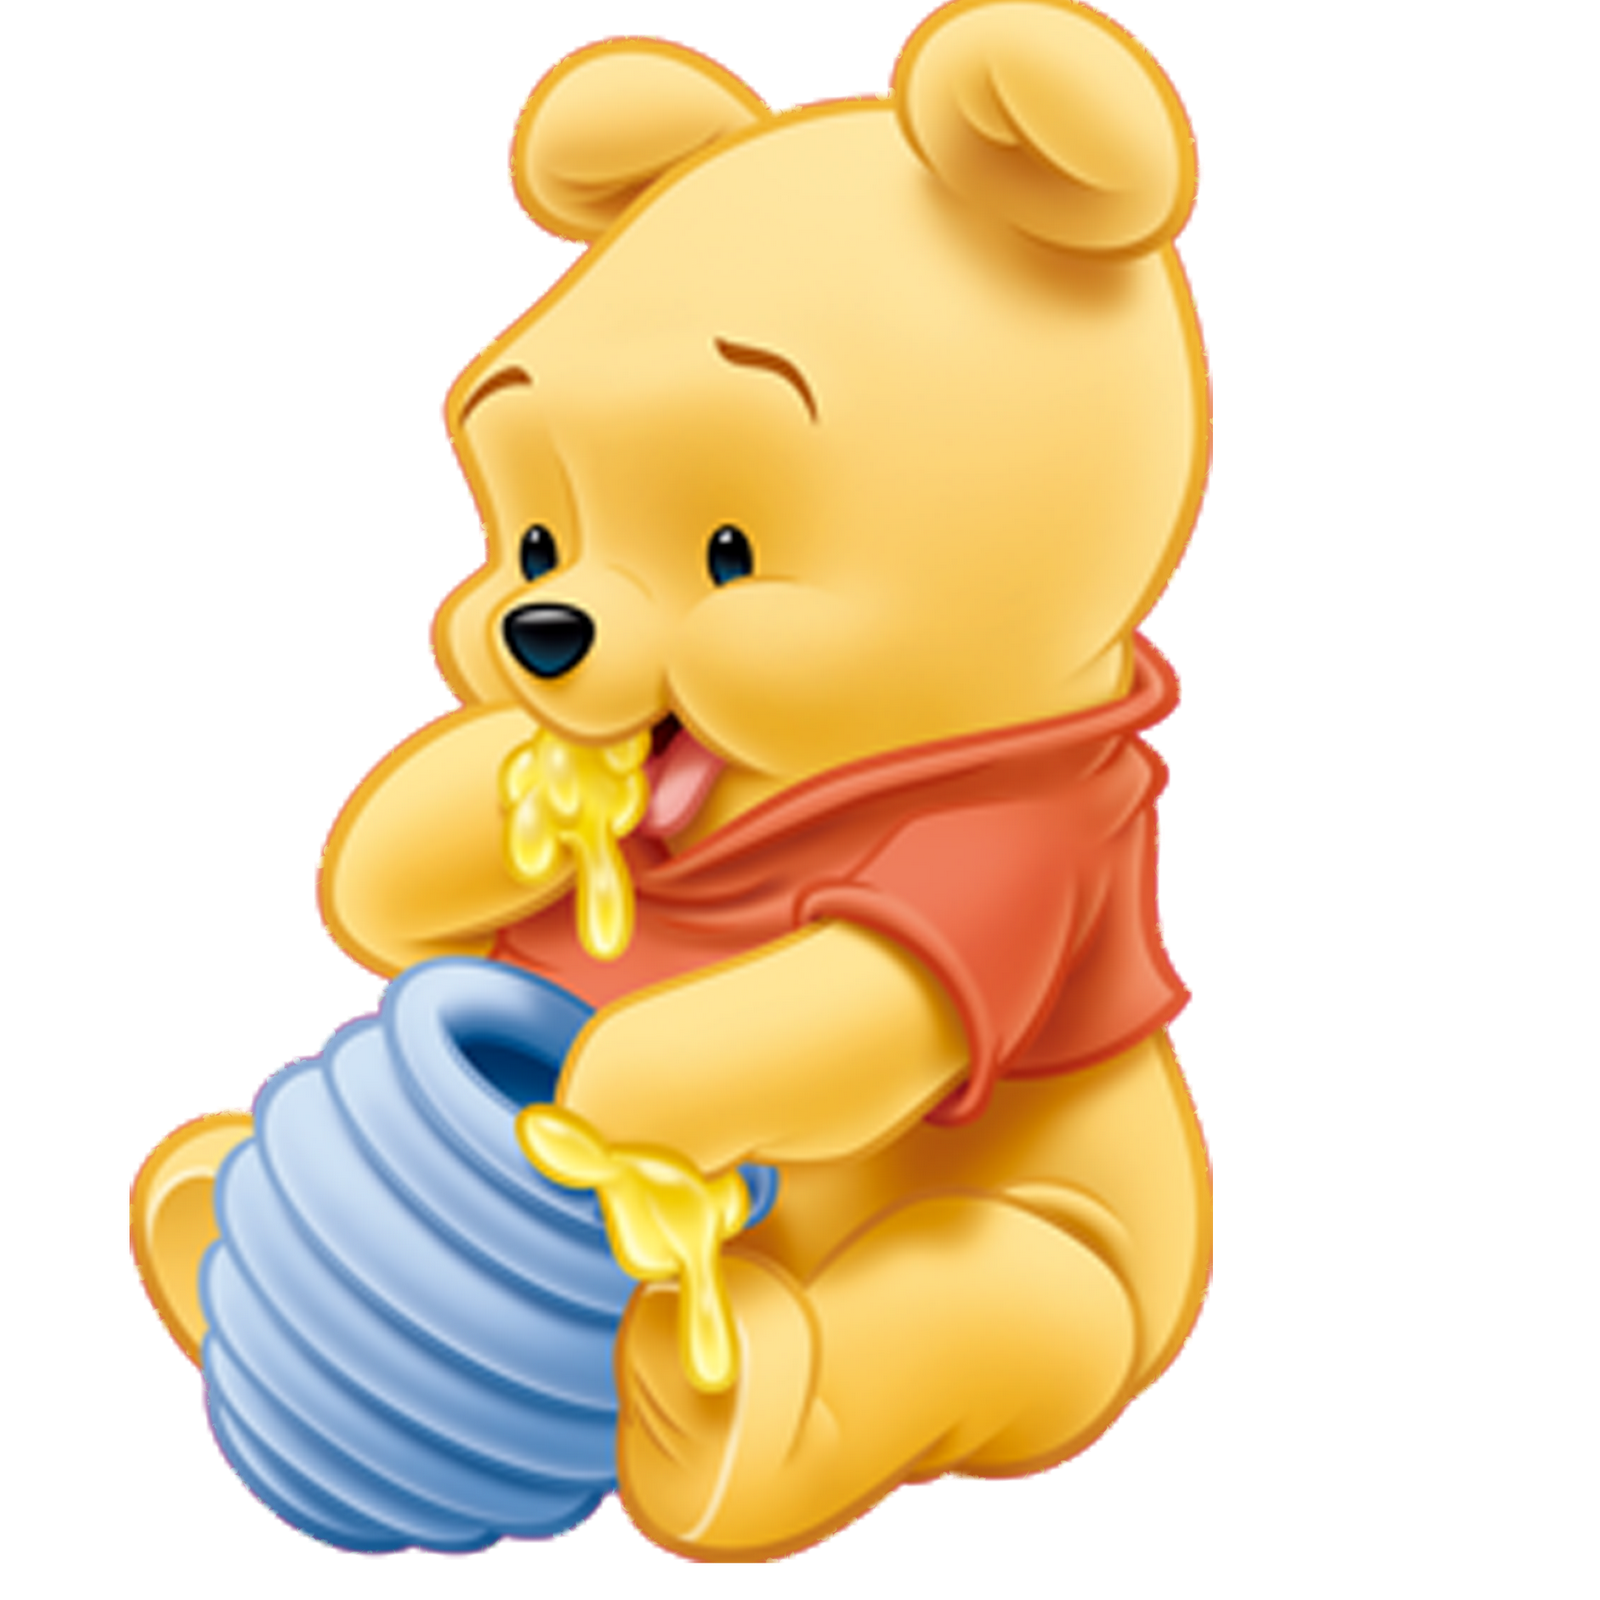 Png image purepng free. Hatch drawing winnie the pooh png freeuse